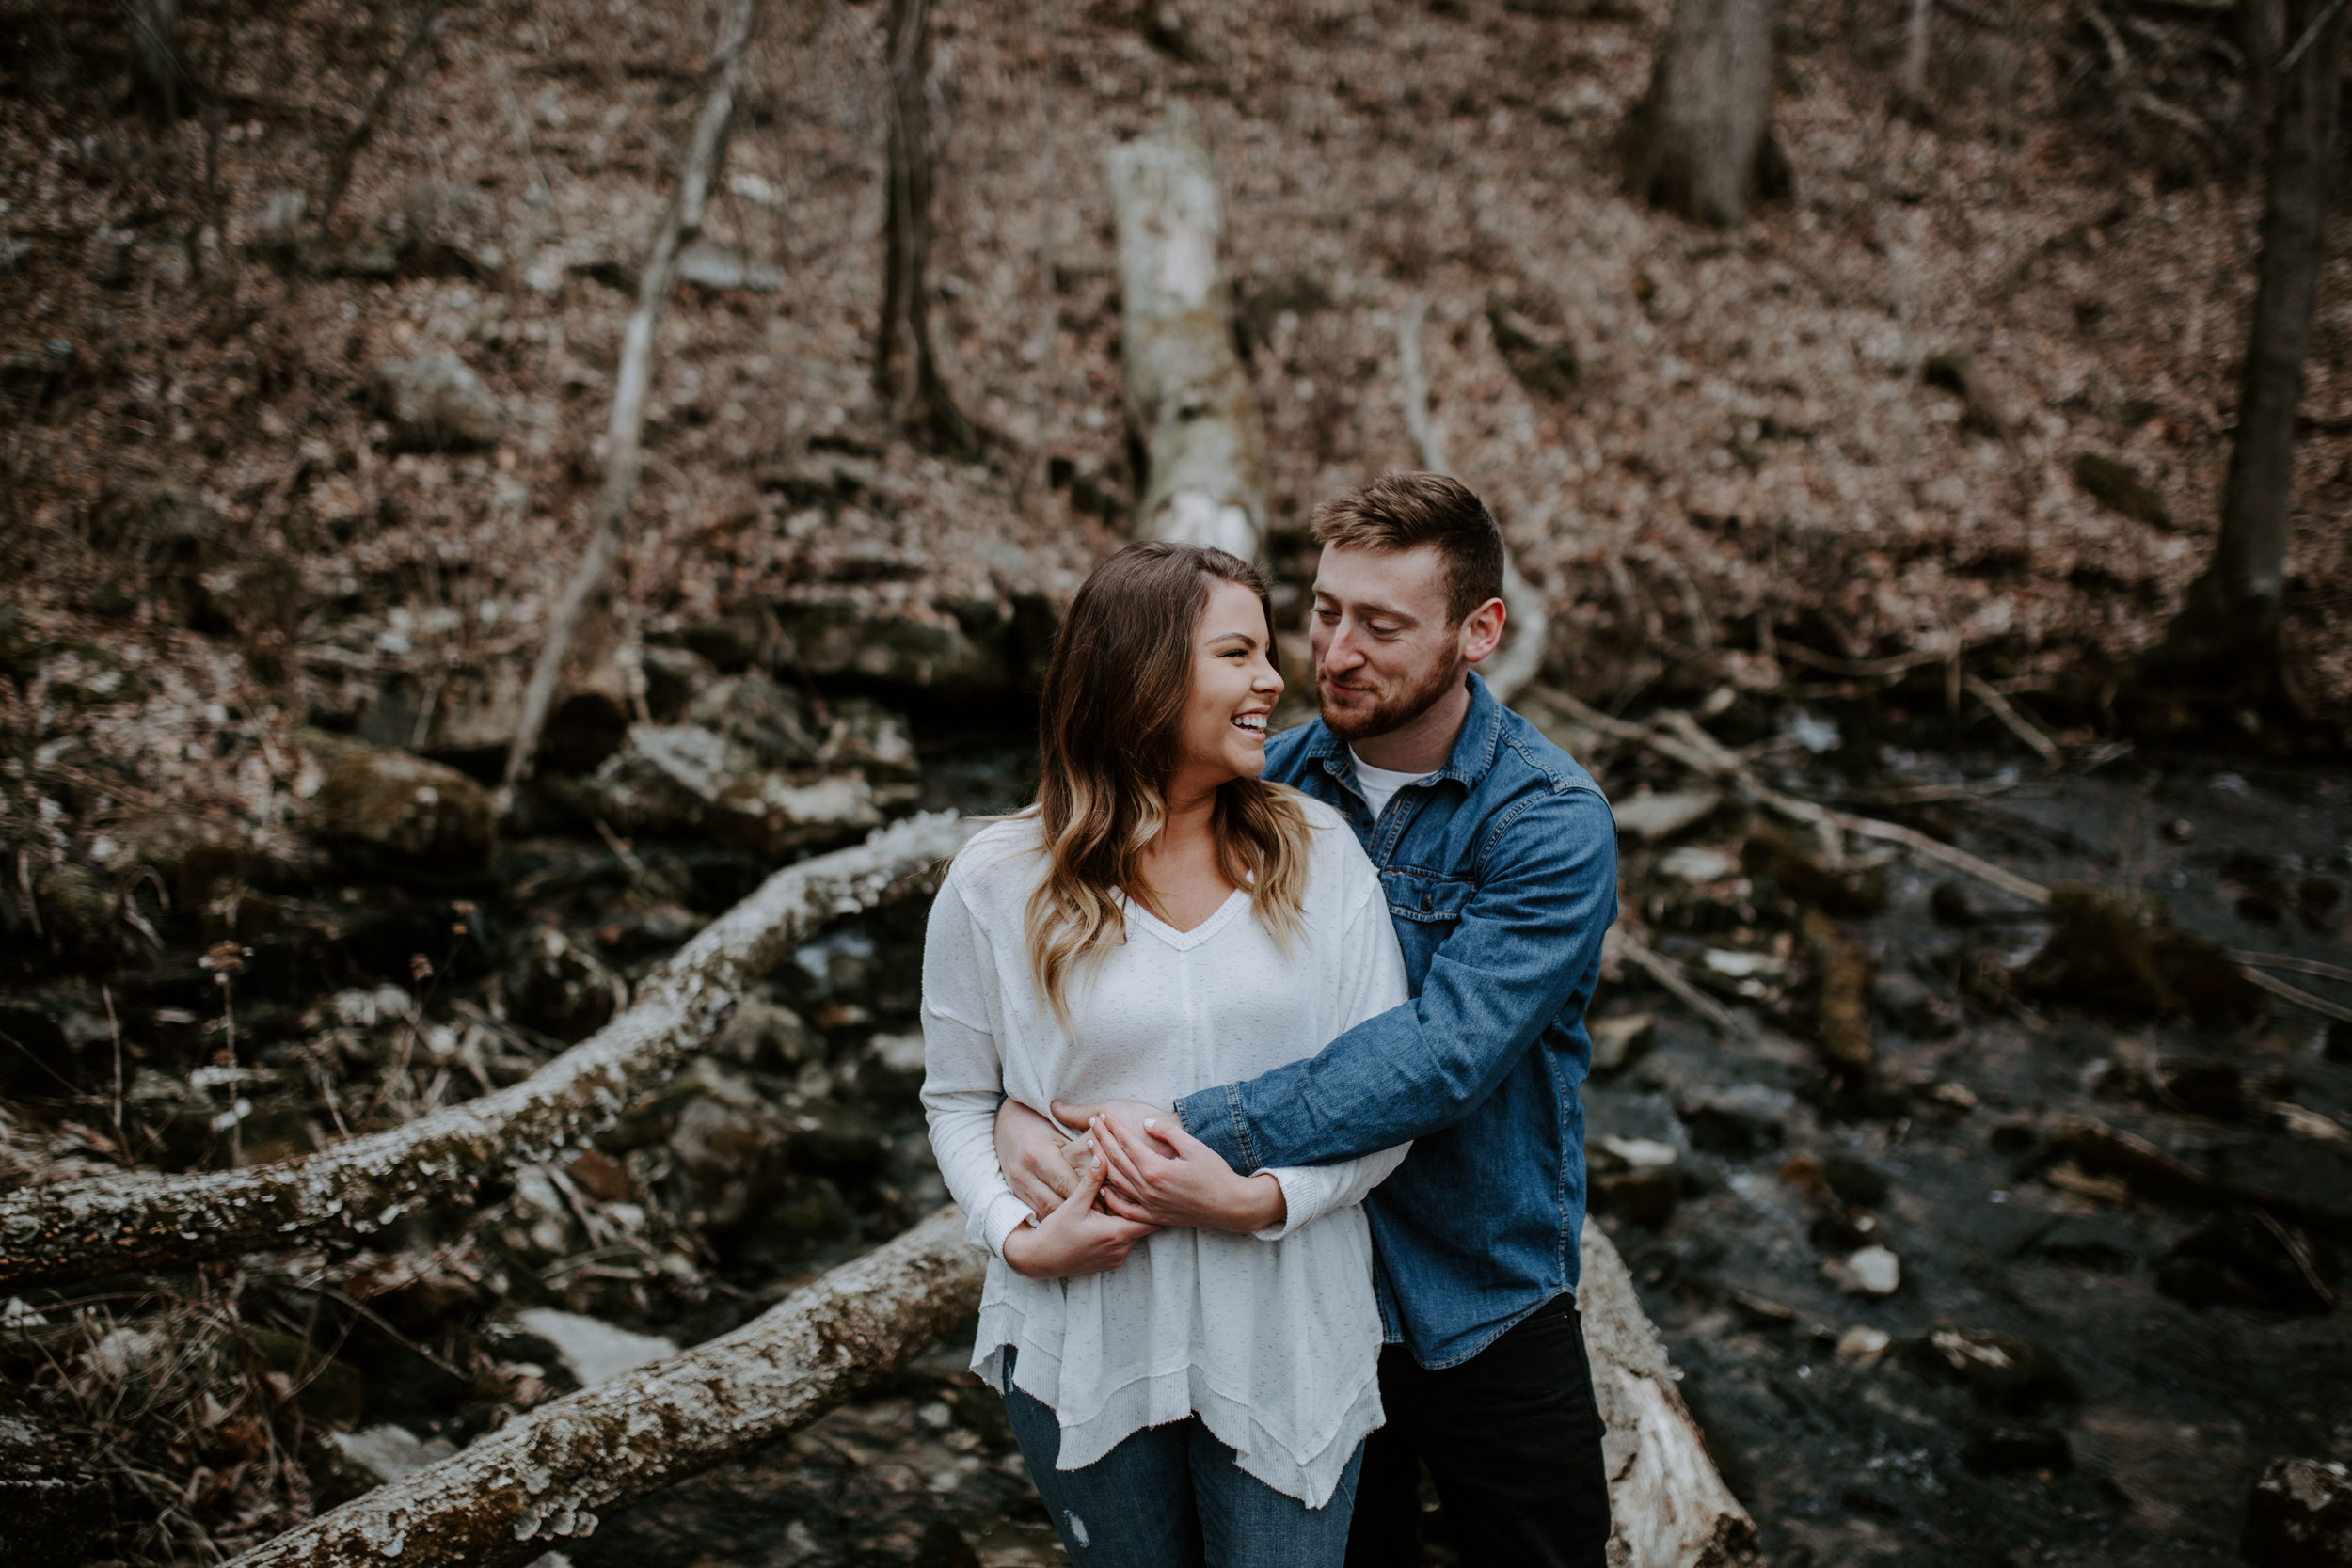 LIZA+EVAN-BLOOMINGTON-COUPLE-ENGAGEMENT-REAGANLYNNPHOTOGRAPHY-MUNCIE-INDIANAPOLIS-2.jpg